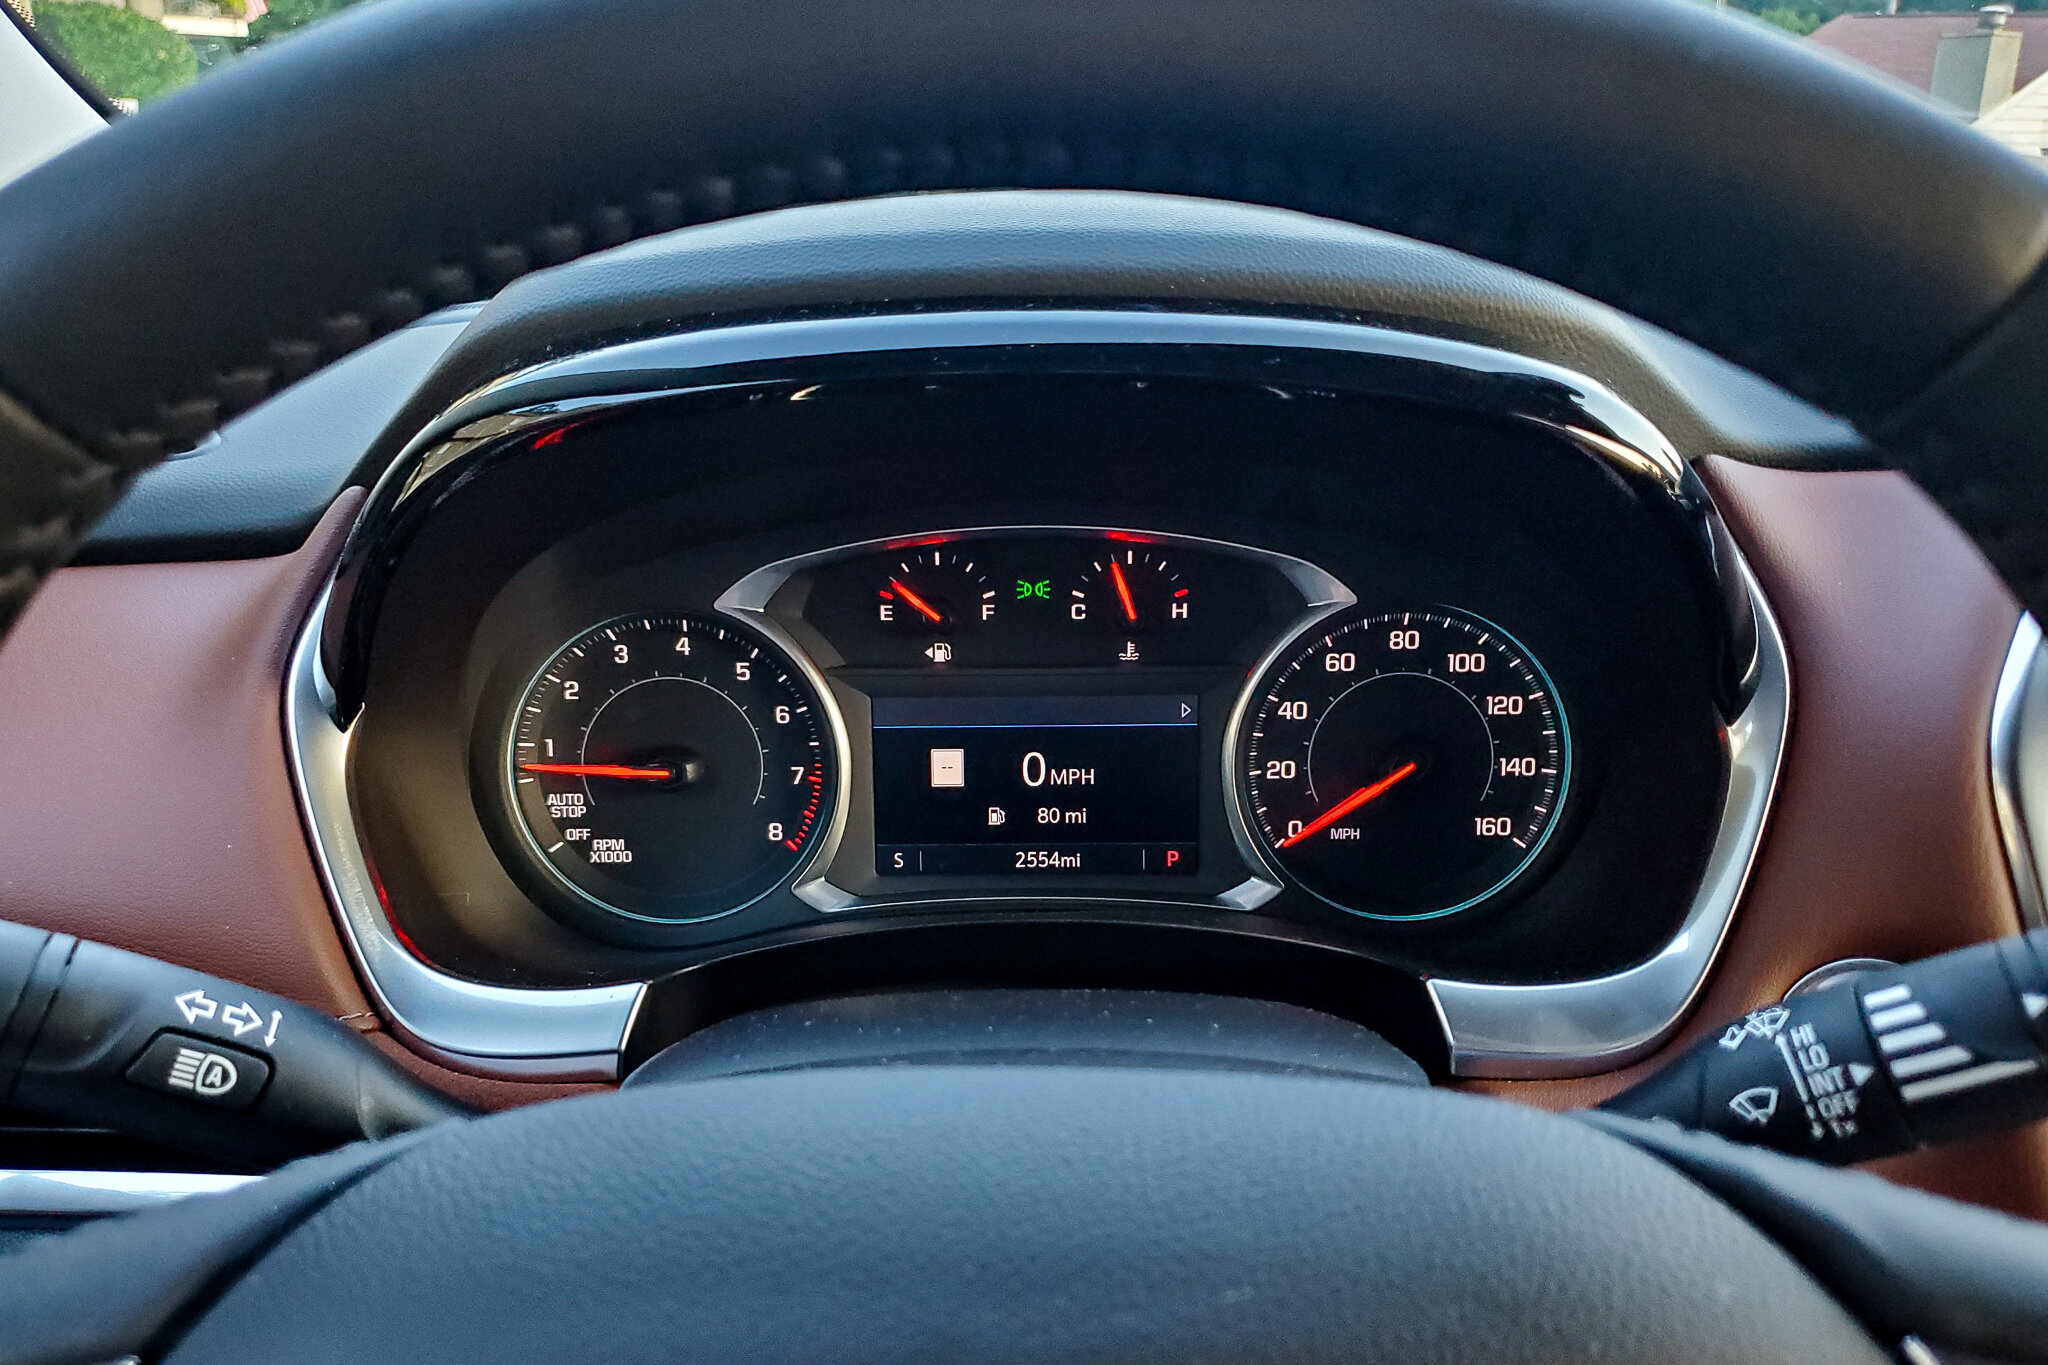 The digital speed display in the 2019 Chevy Traverse makes it easy to know exactly how fast you're going (c) Anna Lanfrechi